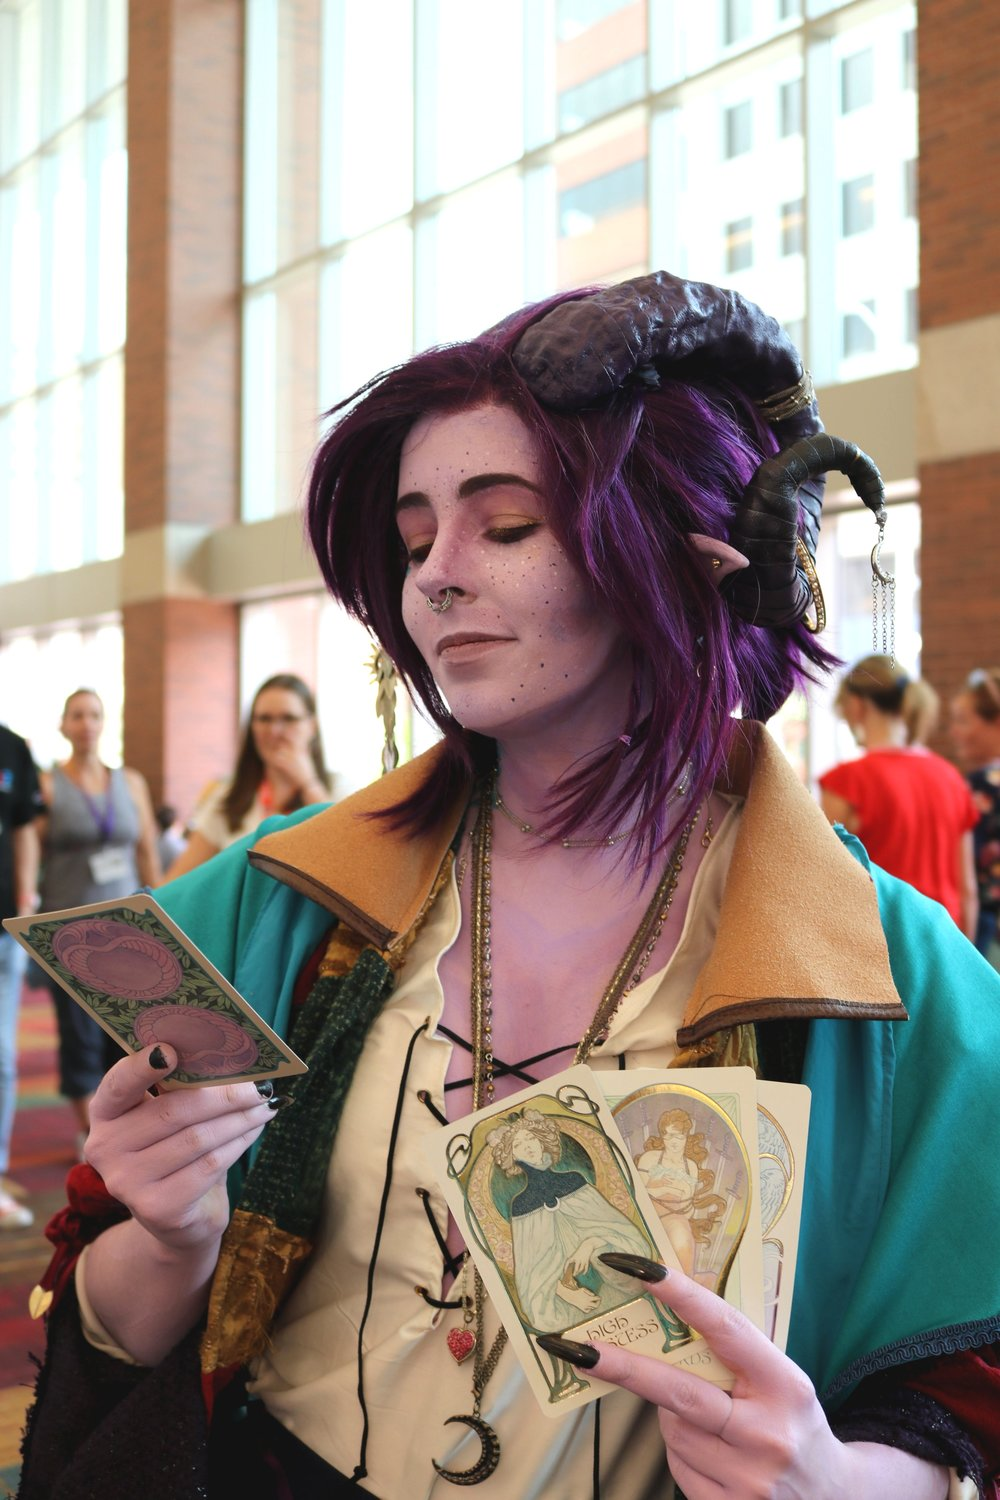 Caketastrophe Cosplay as Mollymauk from Critical Role